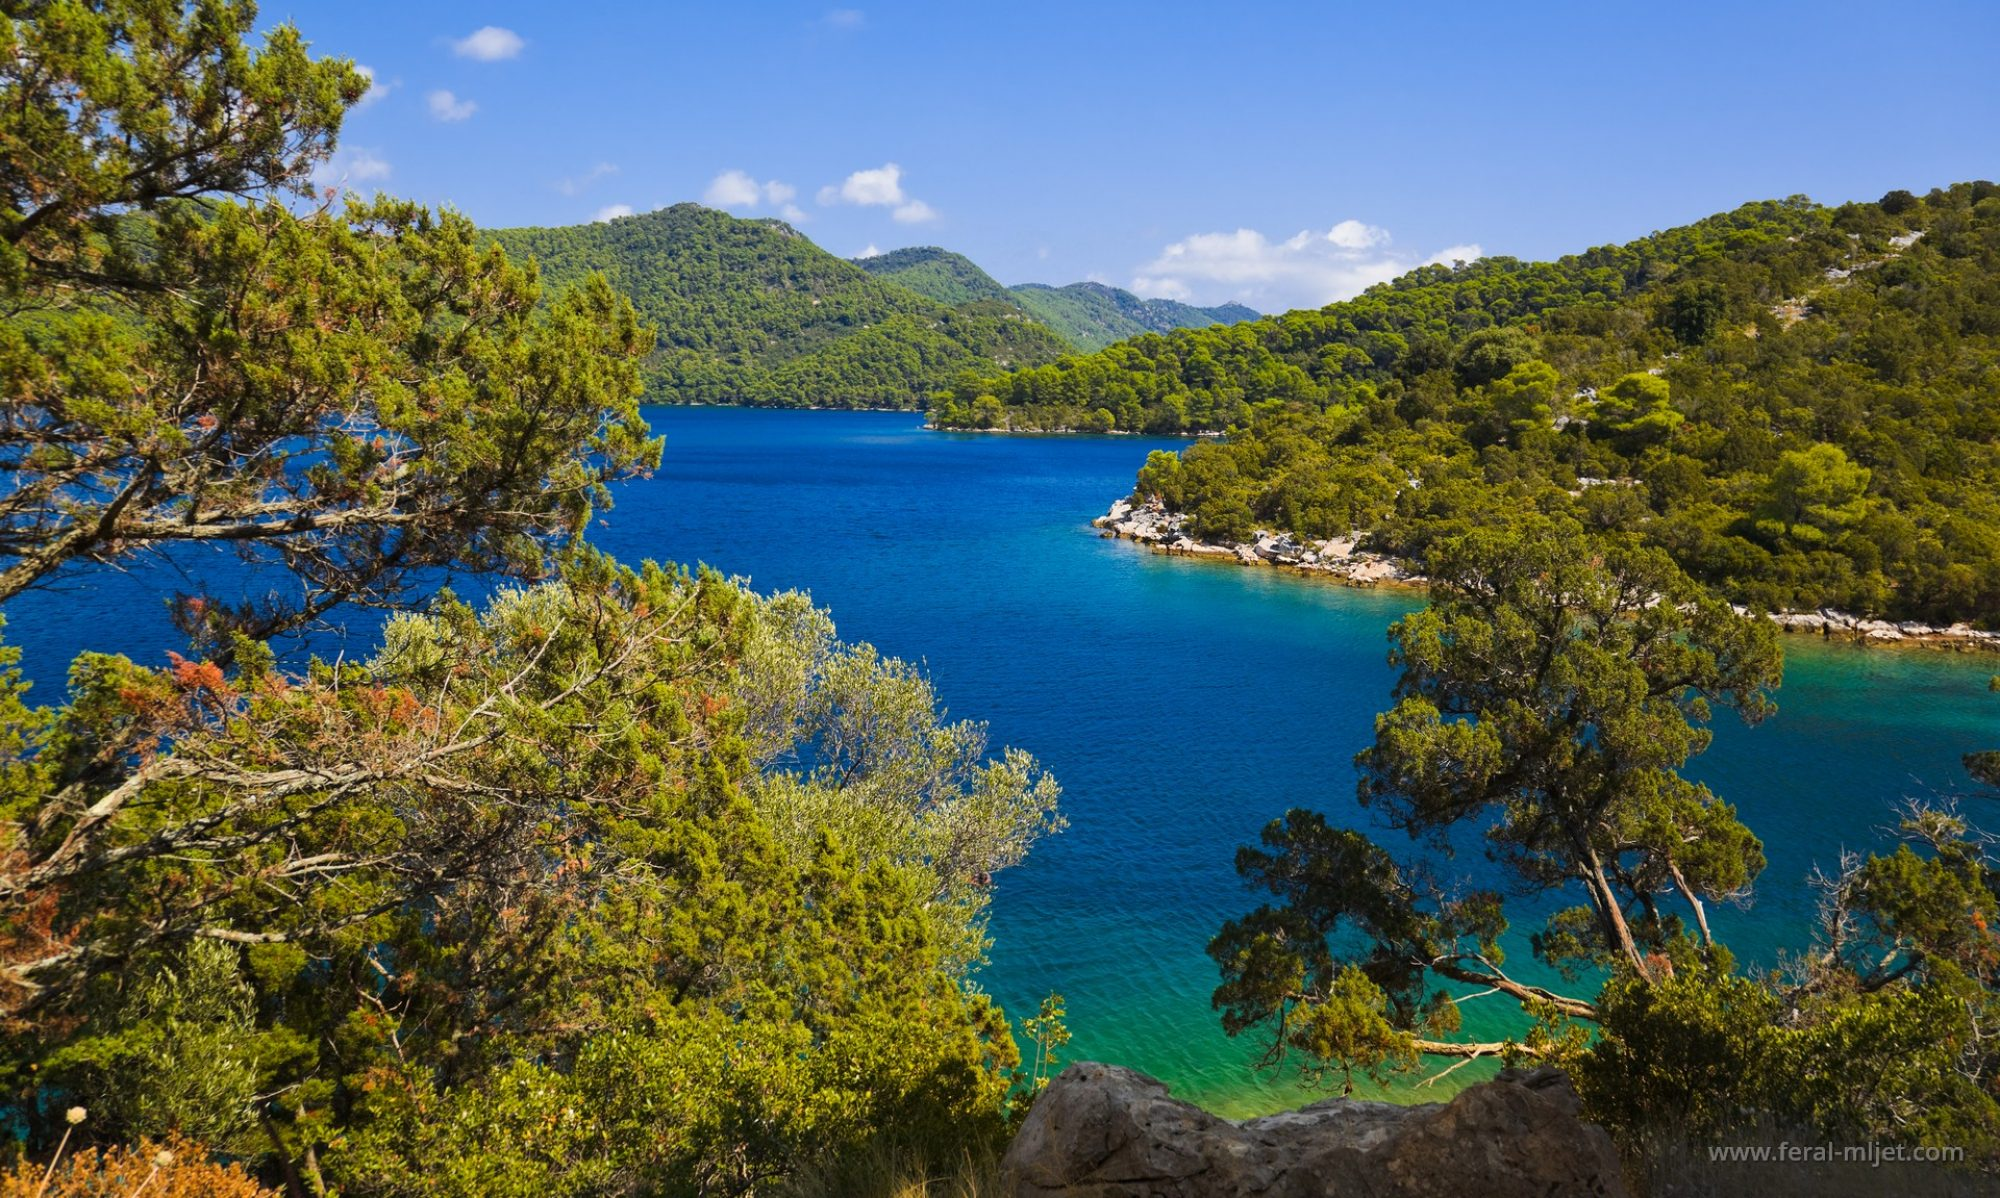 Feral Mljet apartments